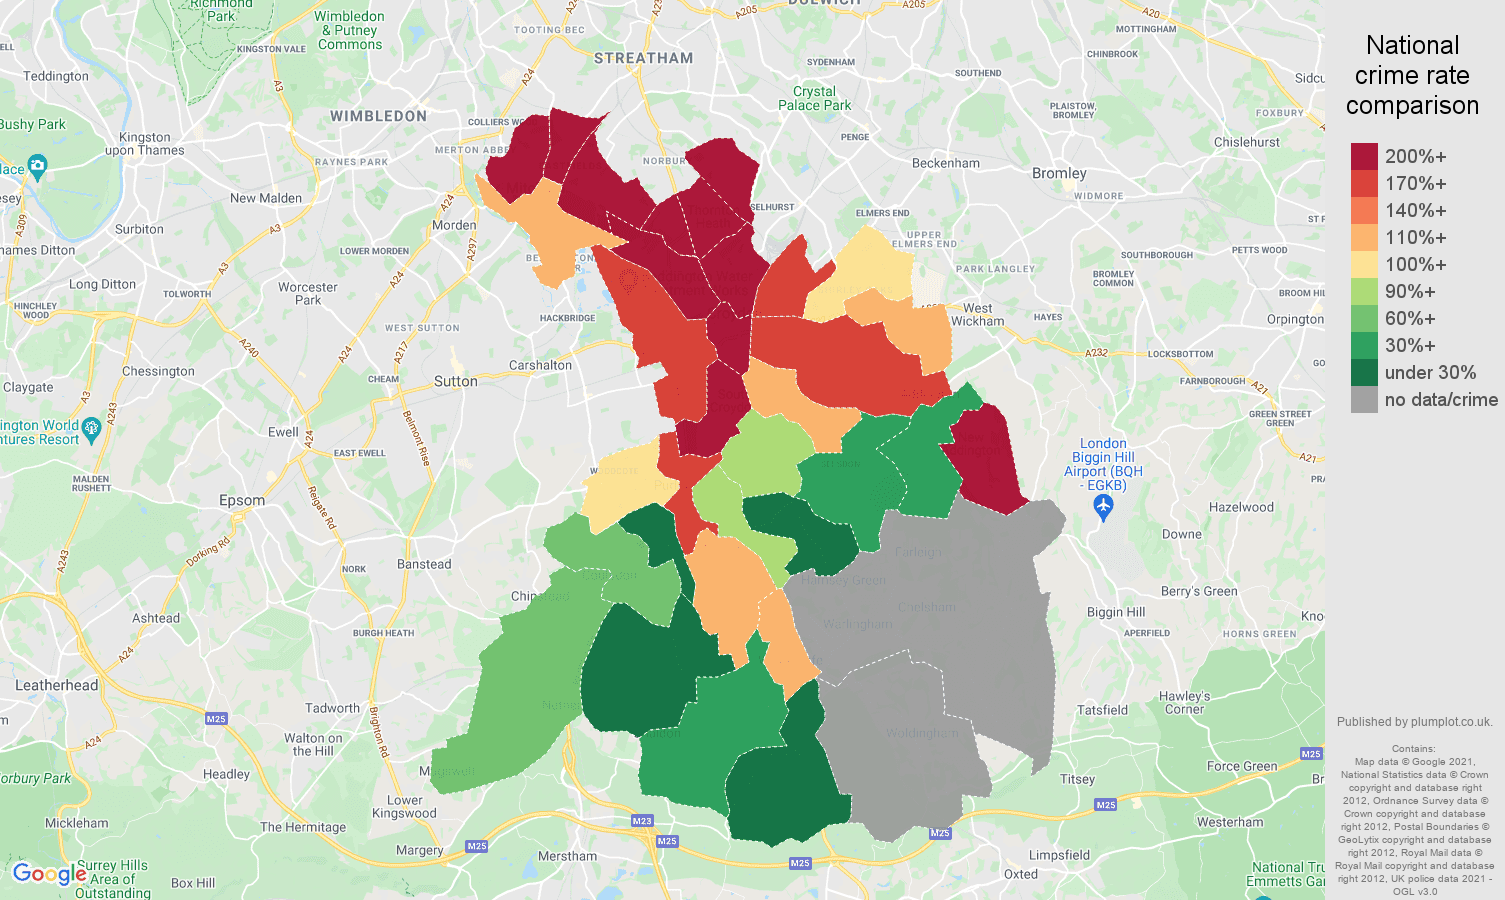 Croydon robbery crime rate comparison map